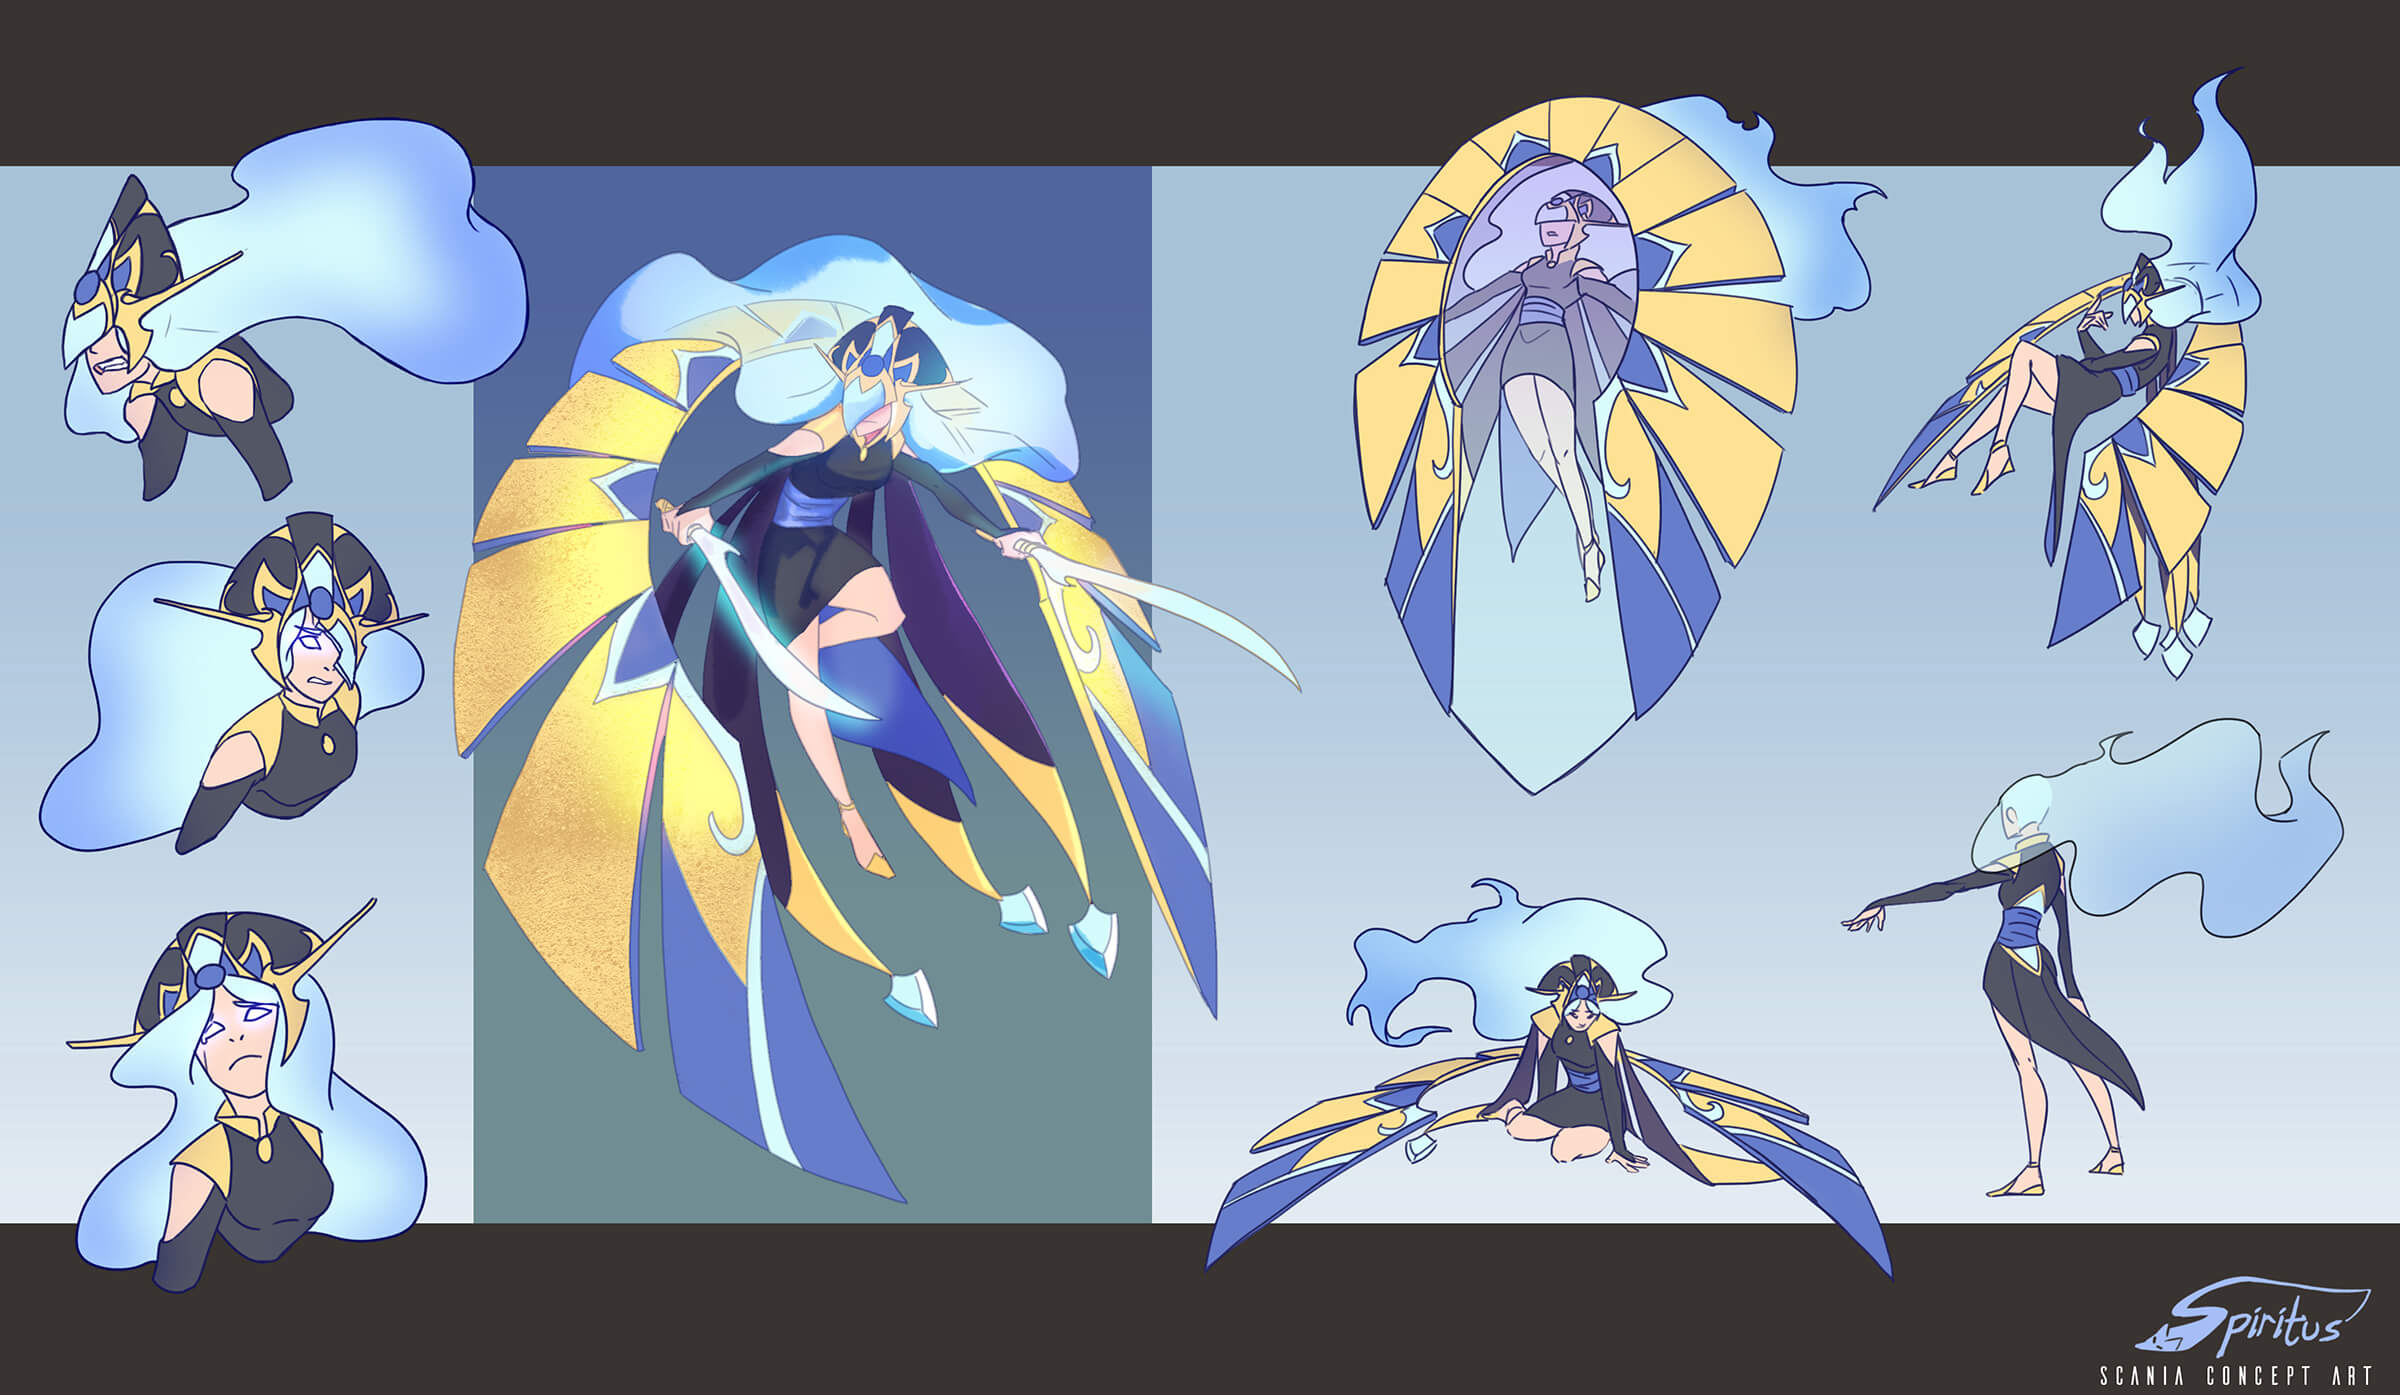 Concept art of an angelic warrior with wispy white hair, in a black tunic draped by gold and blue wings in various poses.